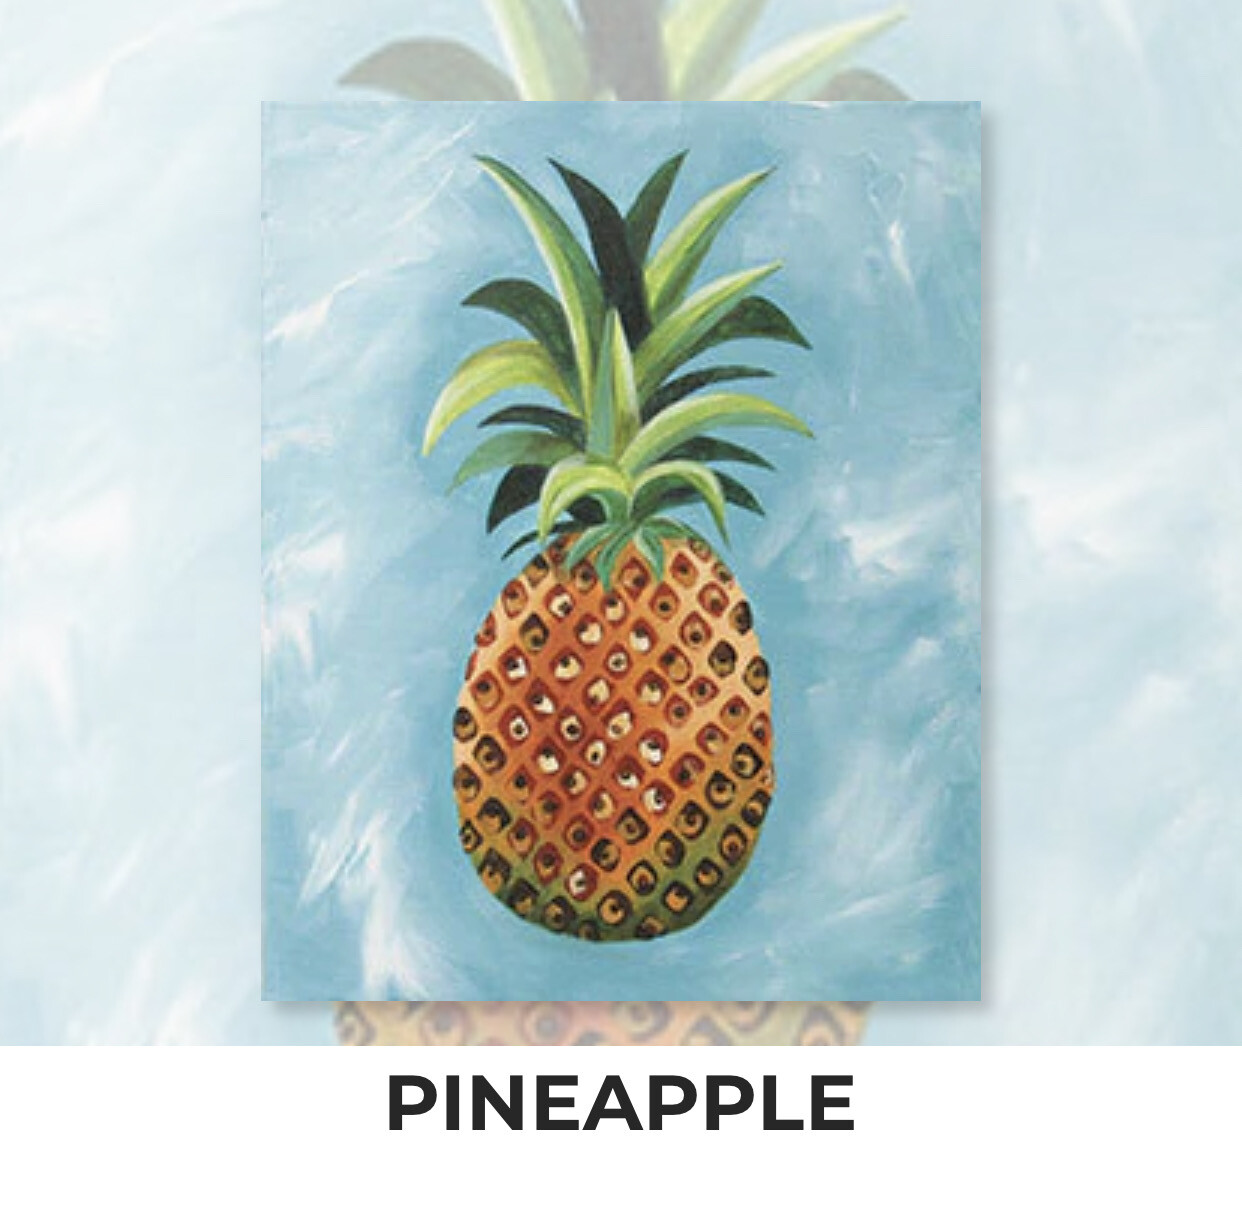 Pineapple ADULT Acrylic Paint On Canvas DIY Art Kit